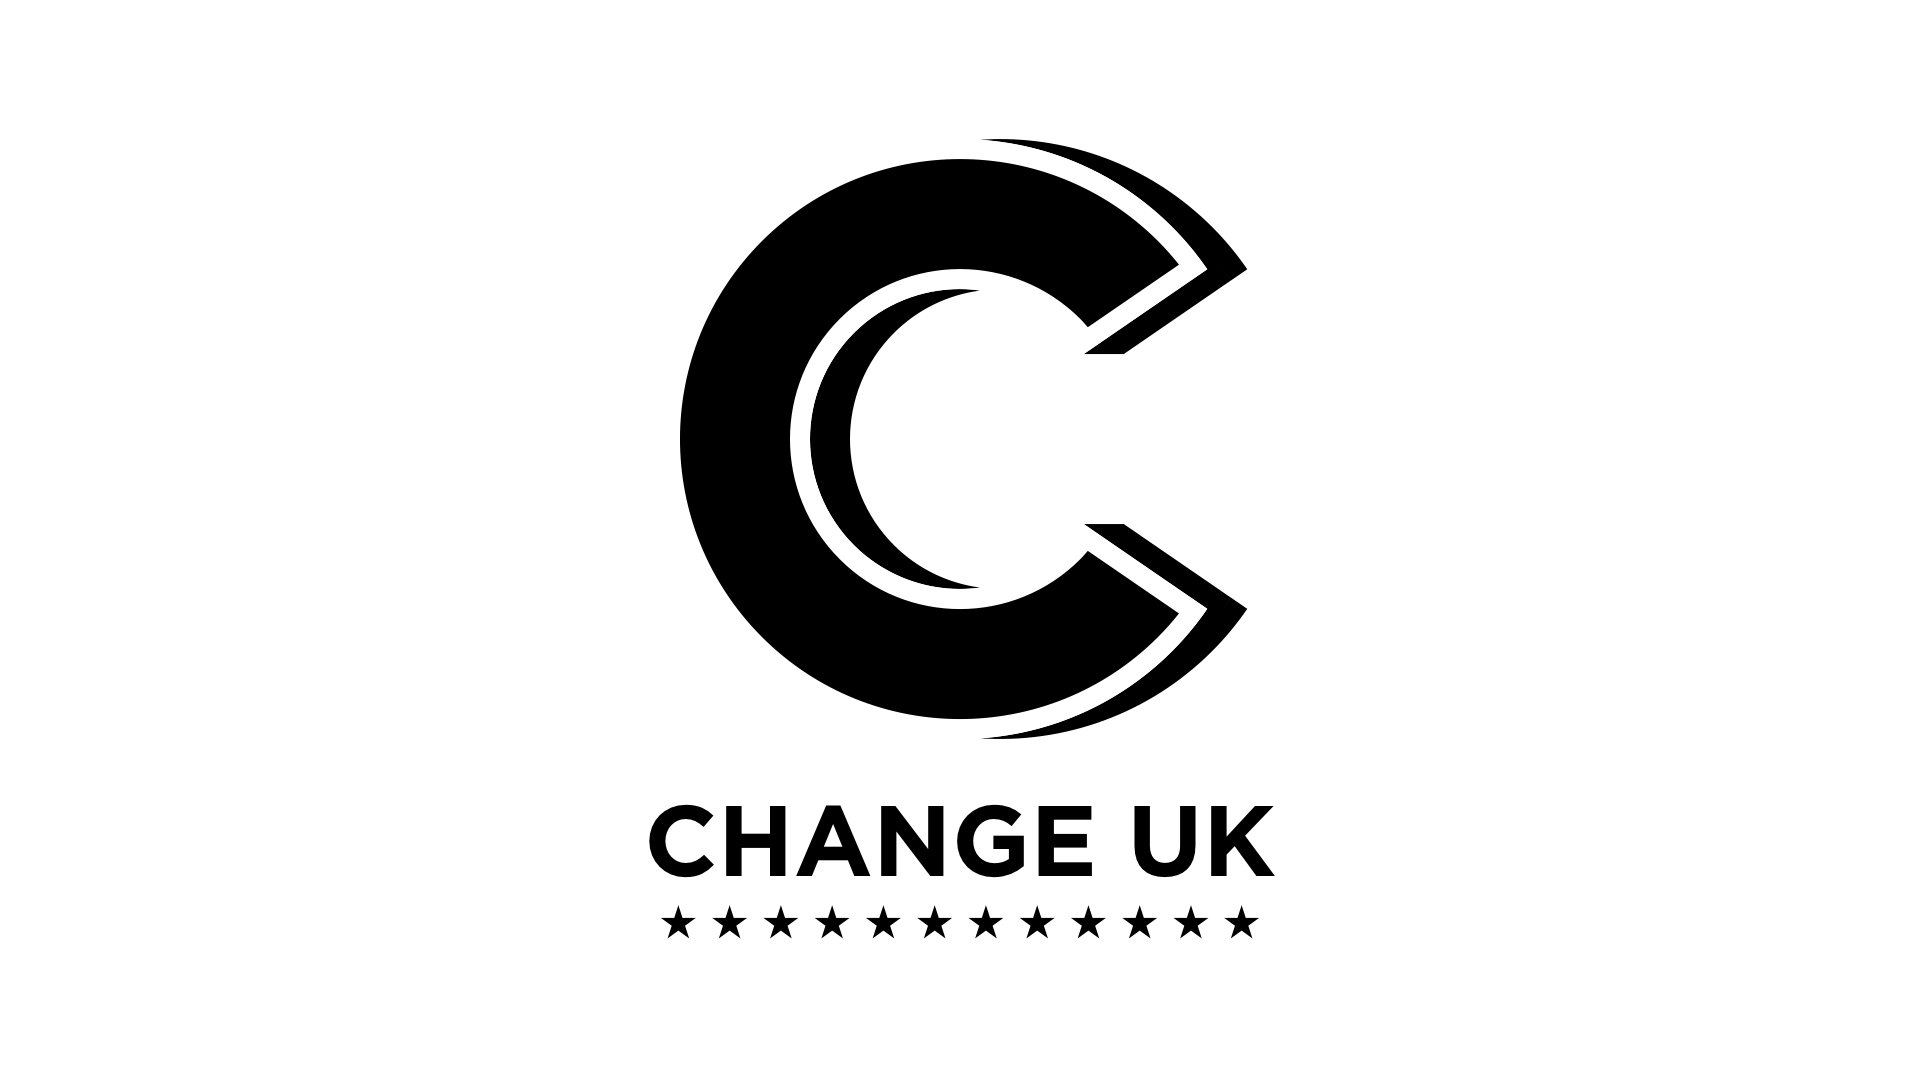 A better logo for Change UK.